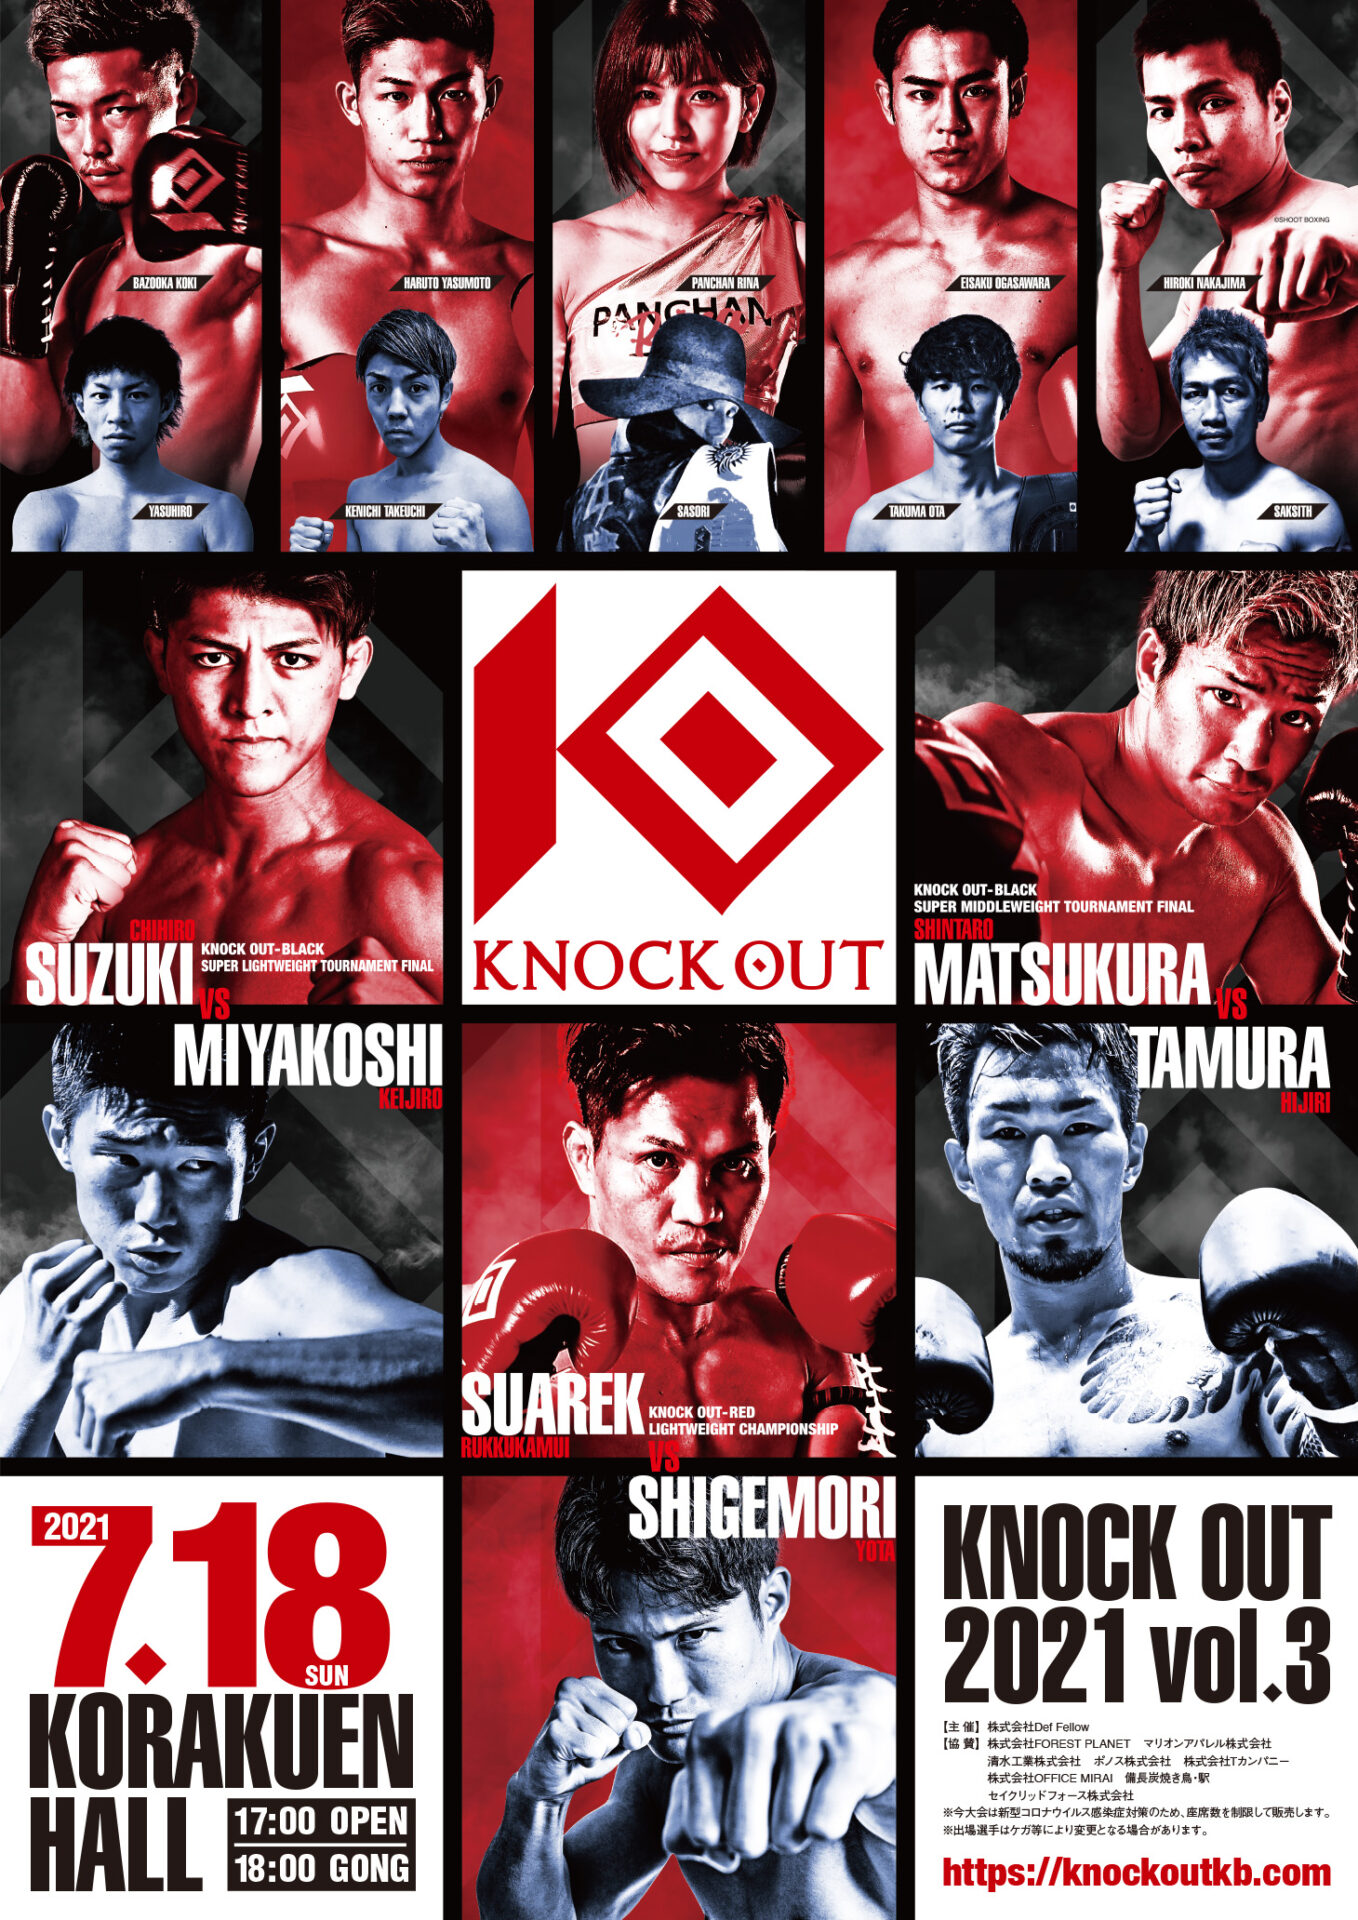 615KNOCK OUT 2021 vol.3